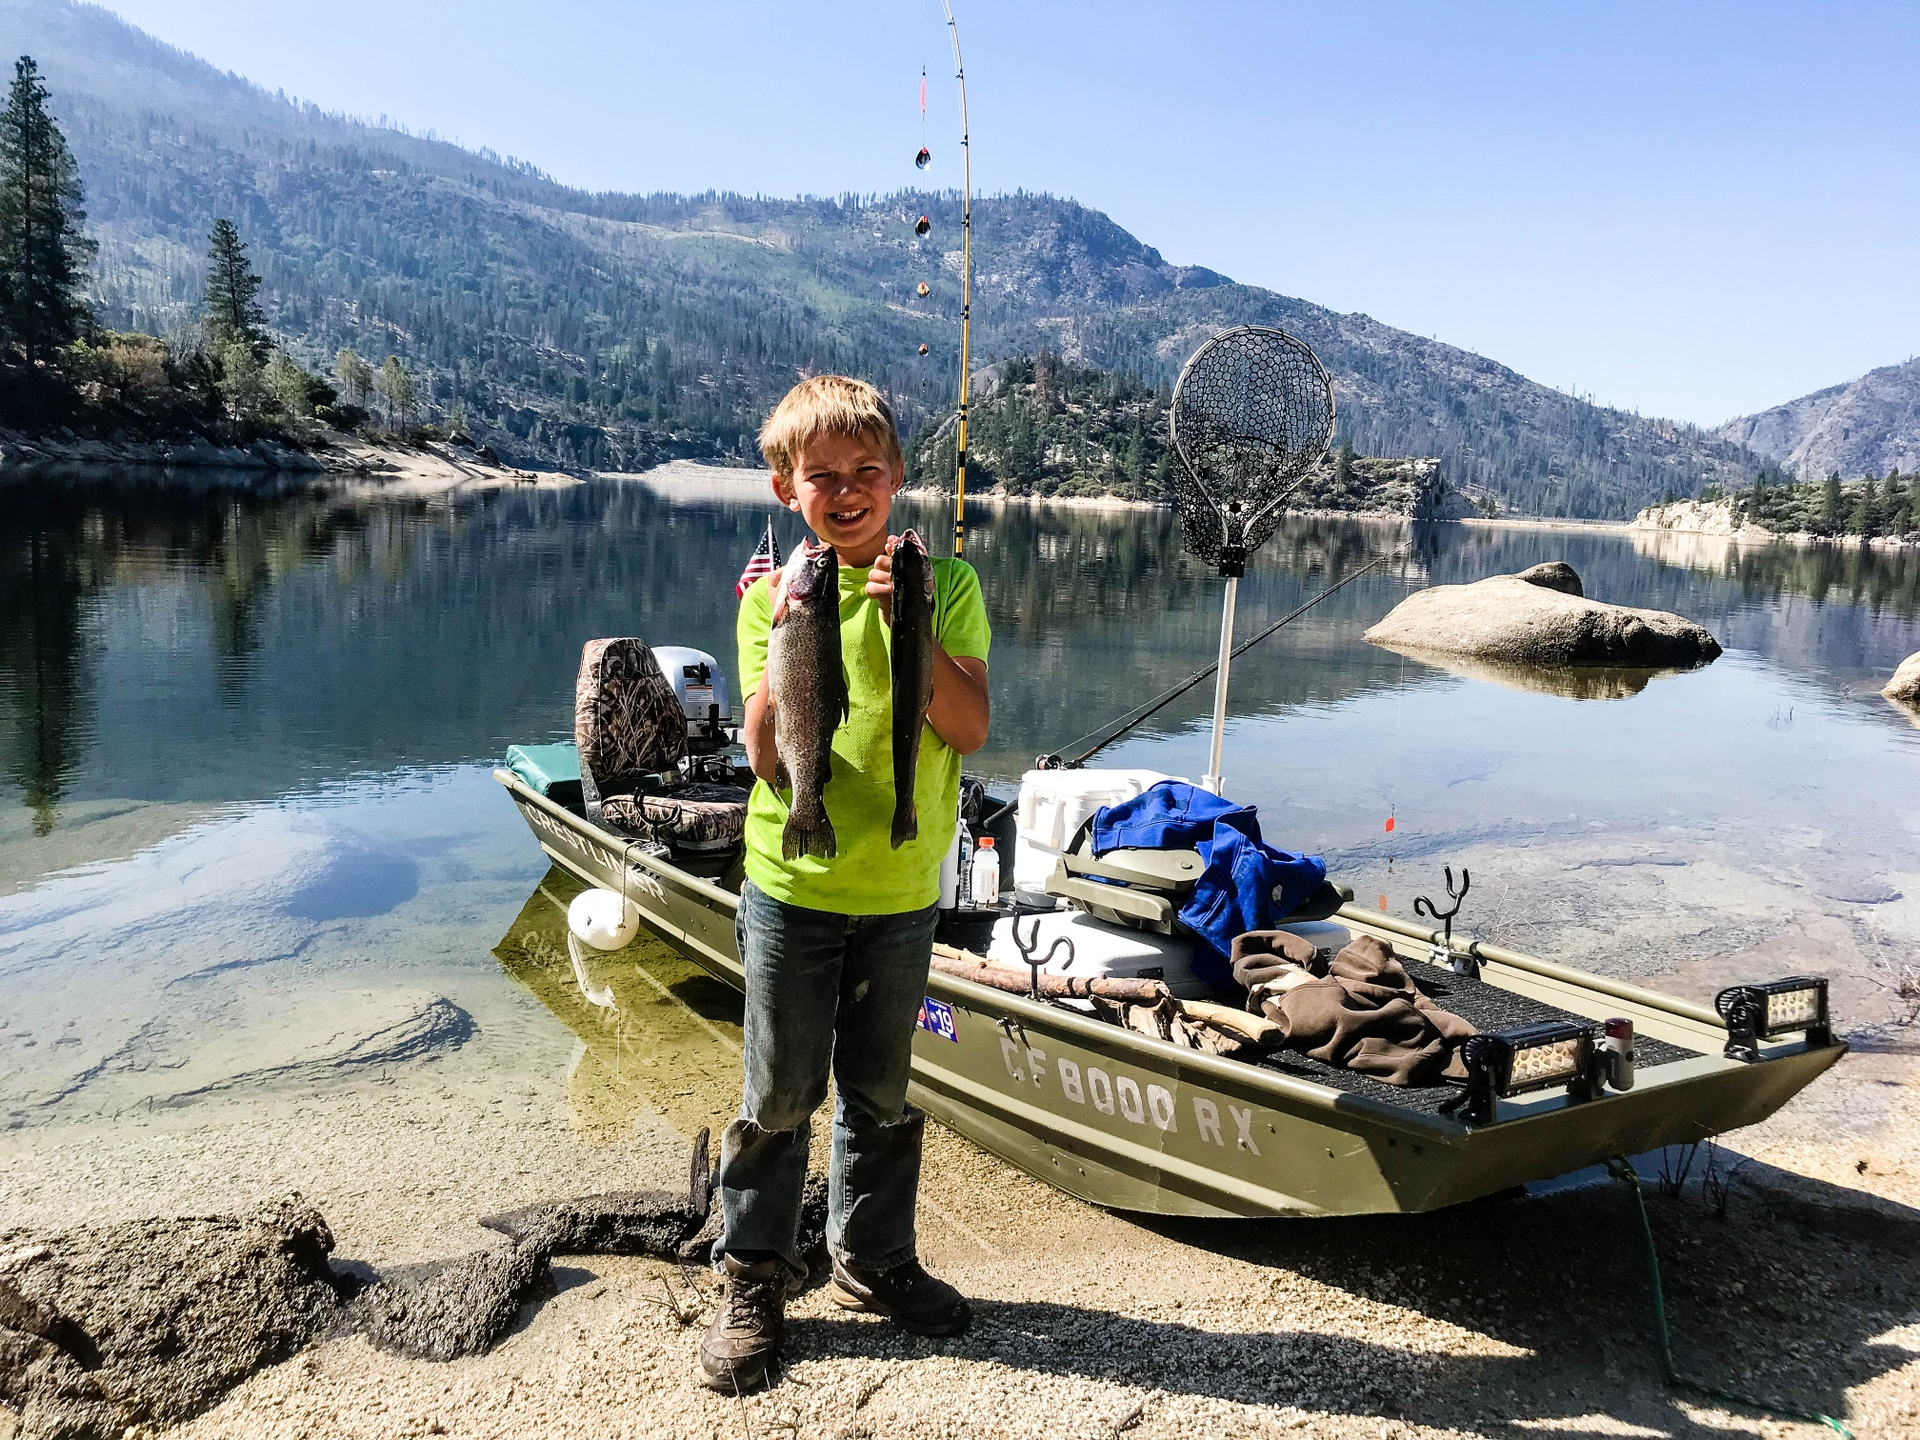 Jamie Snyder had a good day fishing at Mammoth Pool Reservoir last year.